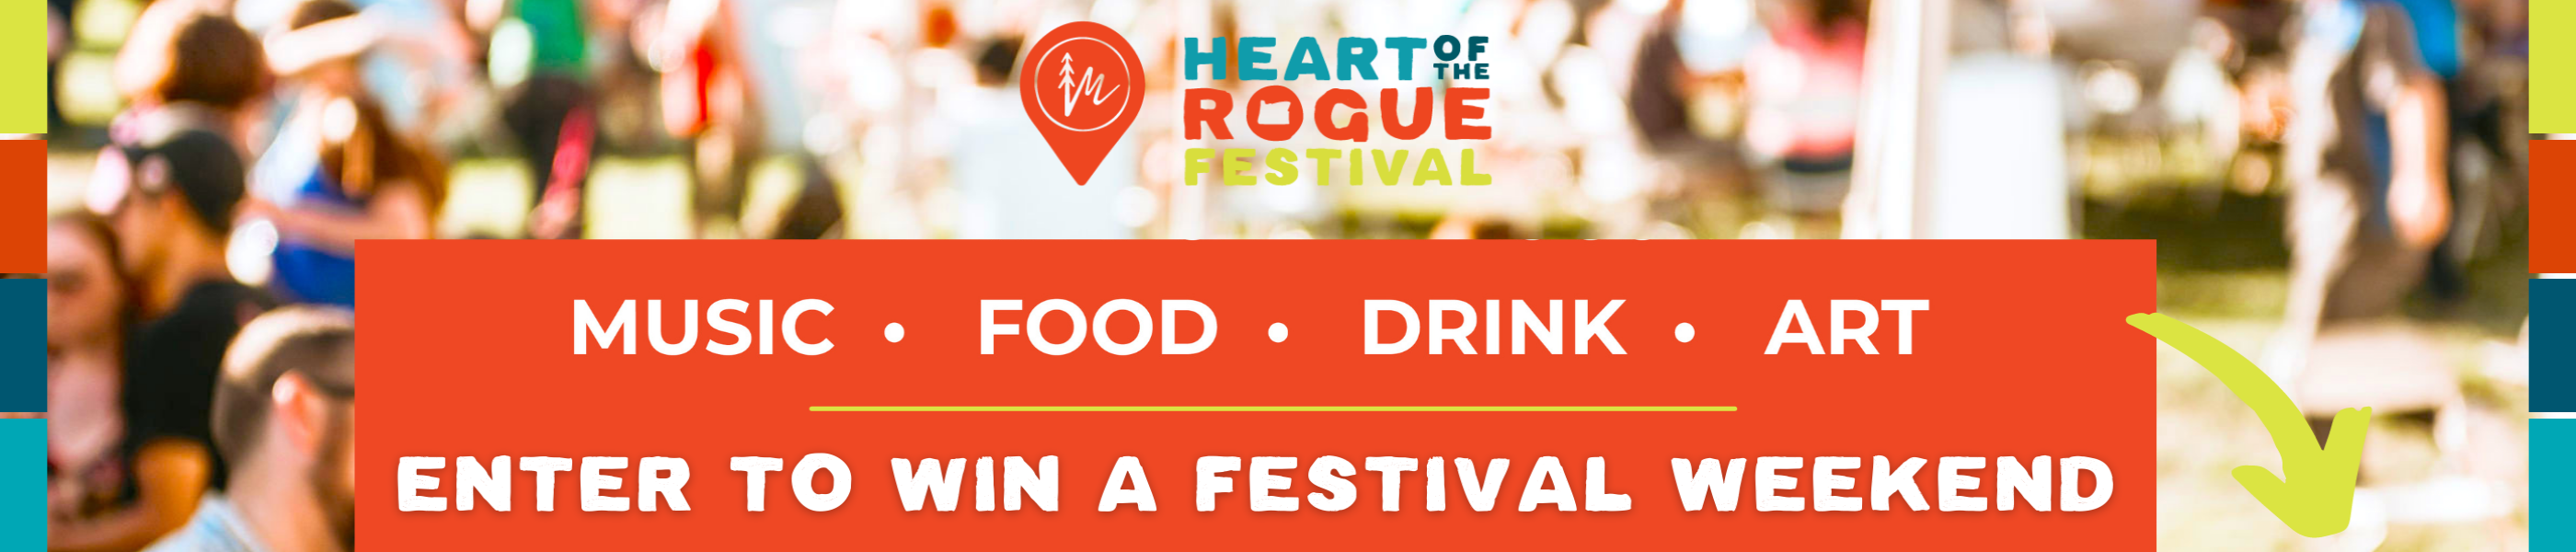 Heart of the Rogue Festival